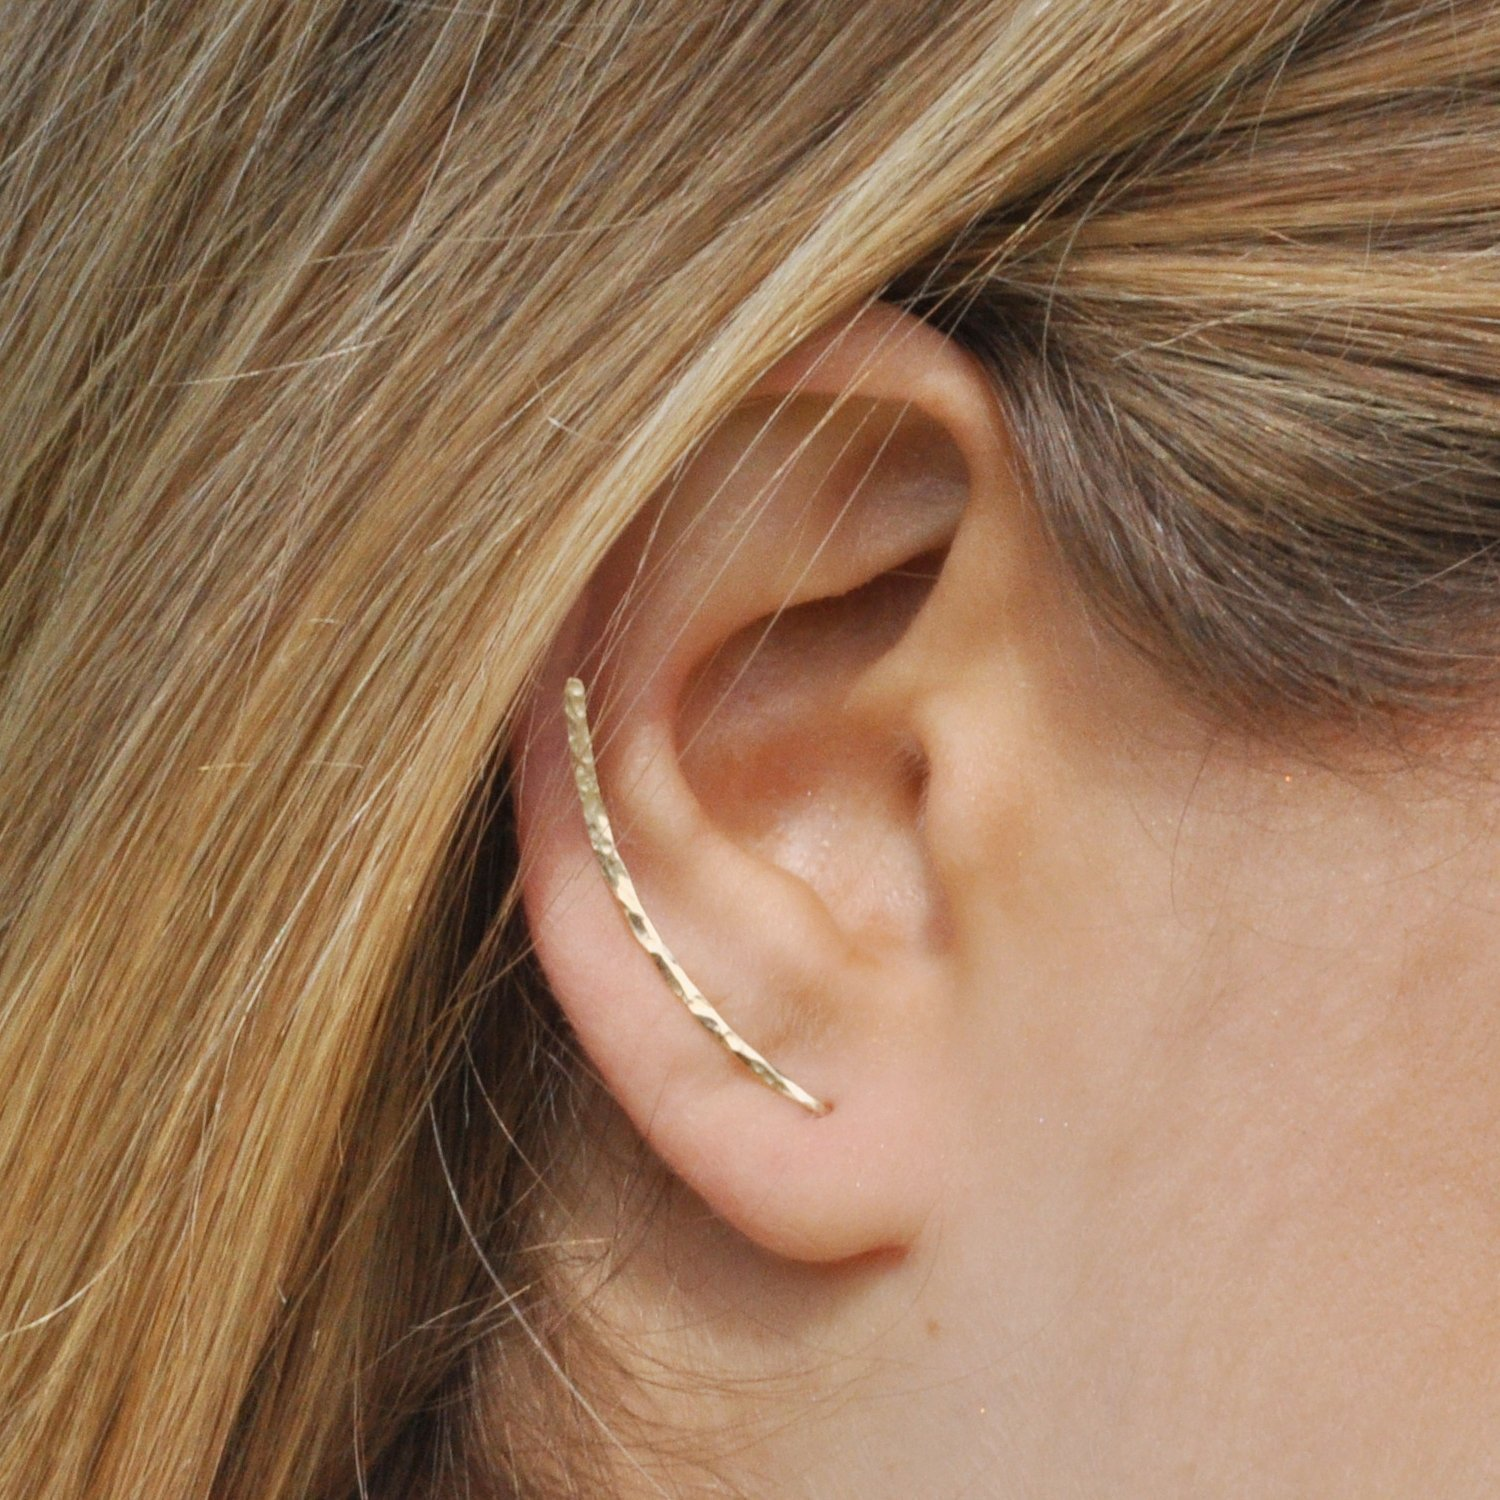 BenittaMoko Handcrafted Hammered Climber Earrings Ear Pins Crawlers Bar Earrings Ear Jackets Cuffs Gold Filled or Silver